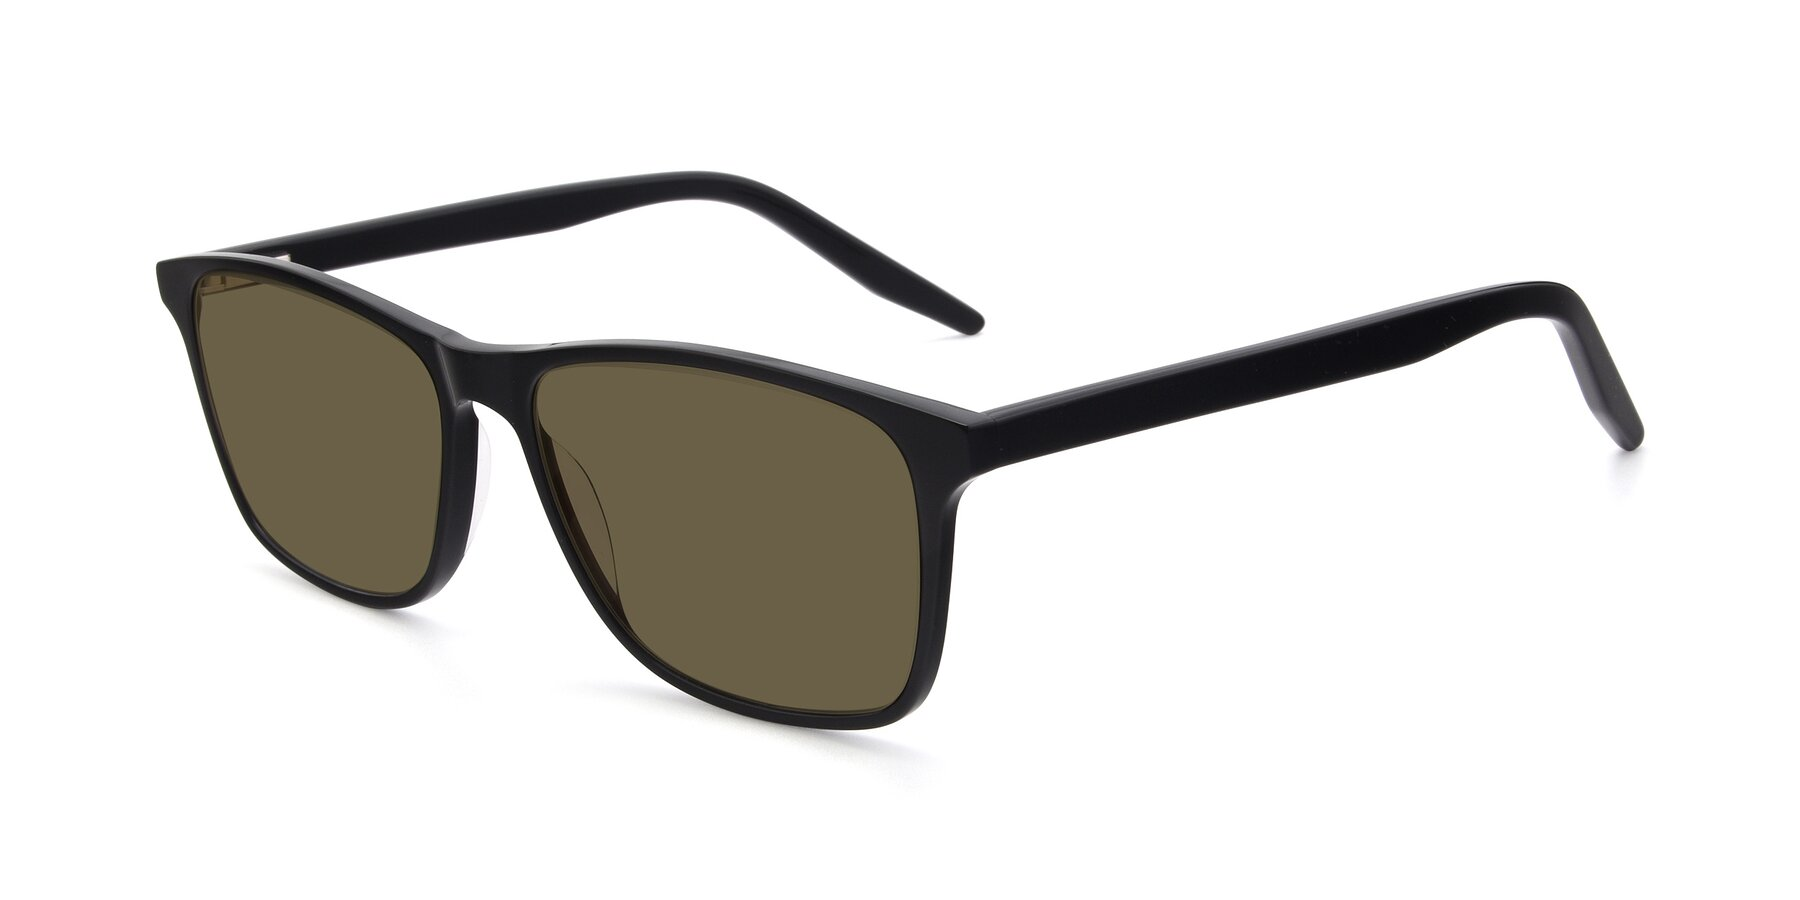 Angle of 17500 in Black with Brown Polarized Lenses